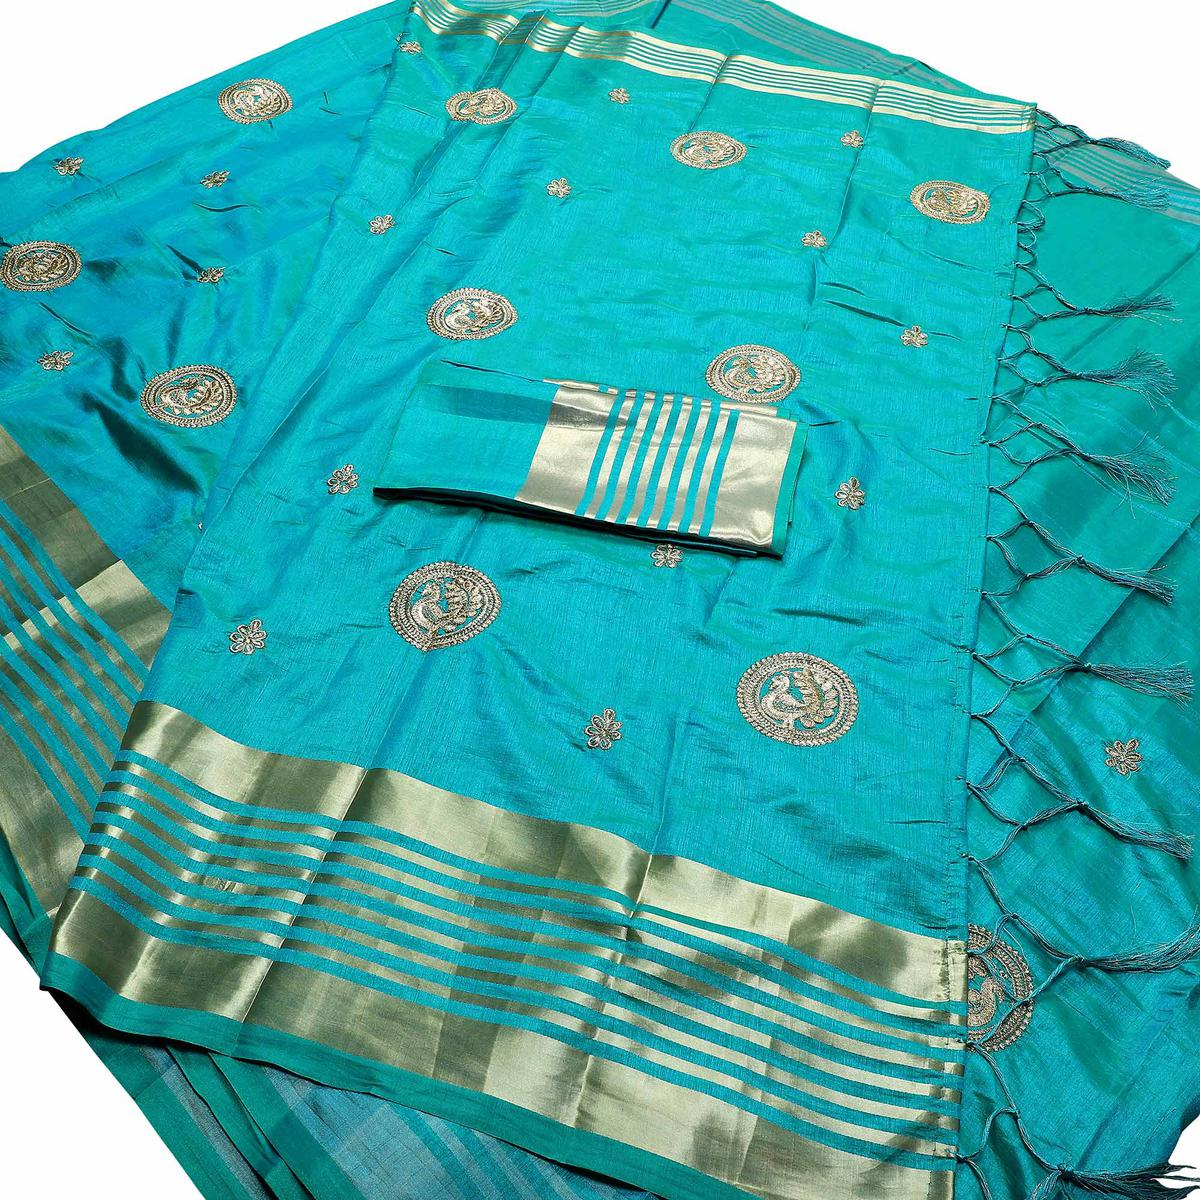 Appealing Sky Blue Colored Festive Wear Peacock Embroidered Banarasi Silk Saree With Tassels